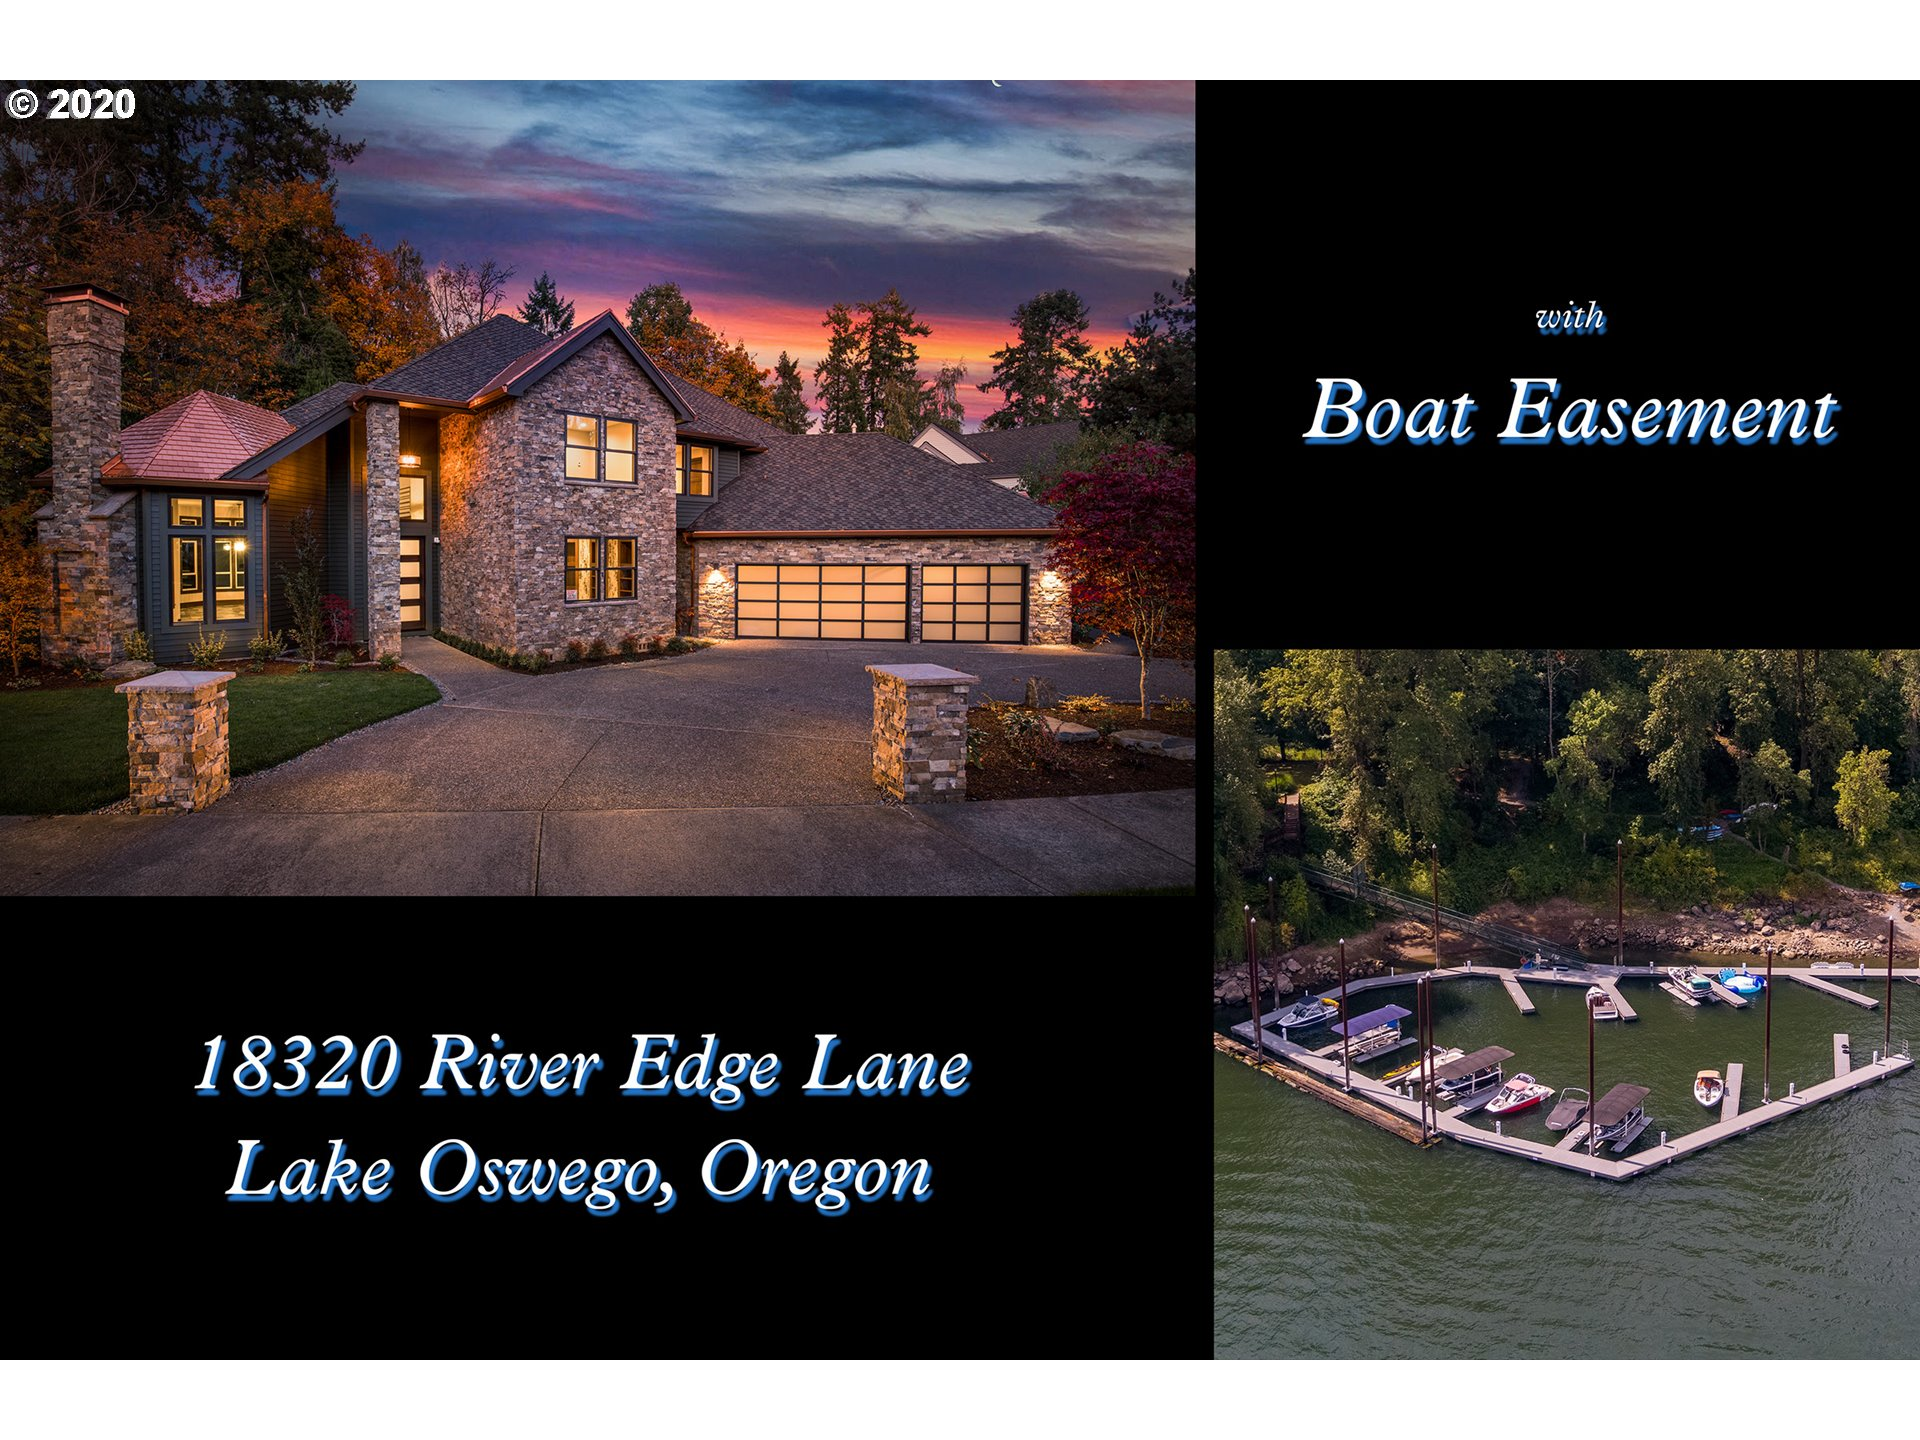 Completely remodeled 4,608 sq ft Lake Oswego's Old River Woods feels like beautiful new construction. Gorgeous finishes - dark stained wide plank white oak floors, thick walnut trim, Thermador SS appliances, & porcelain slate-look tile, incredible master with huge walk-in shower and free standing tub. Four bedroom suites, media rm & office, marina with 30' boat slip included on Wilamette River & covered sunstream hydraulic lift.